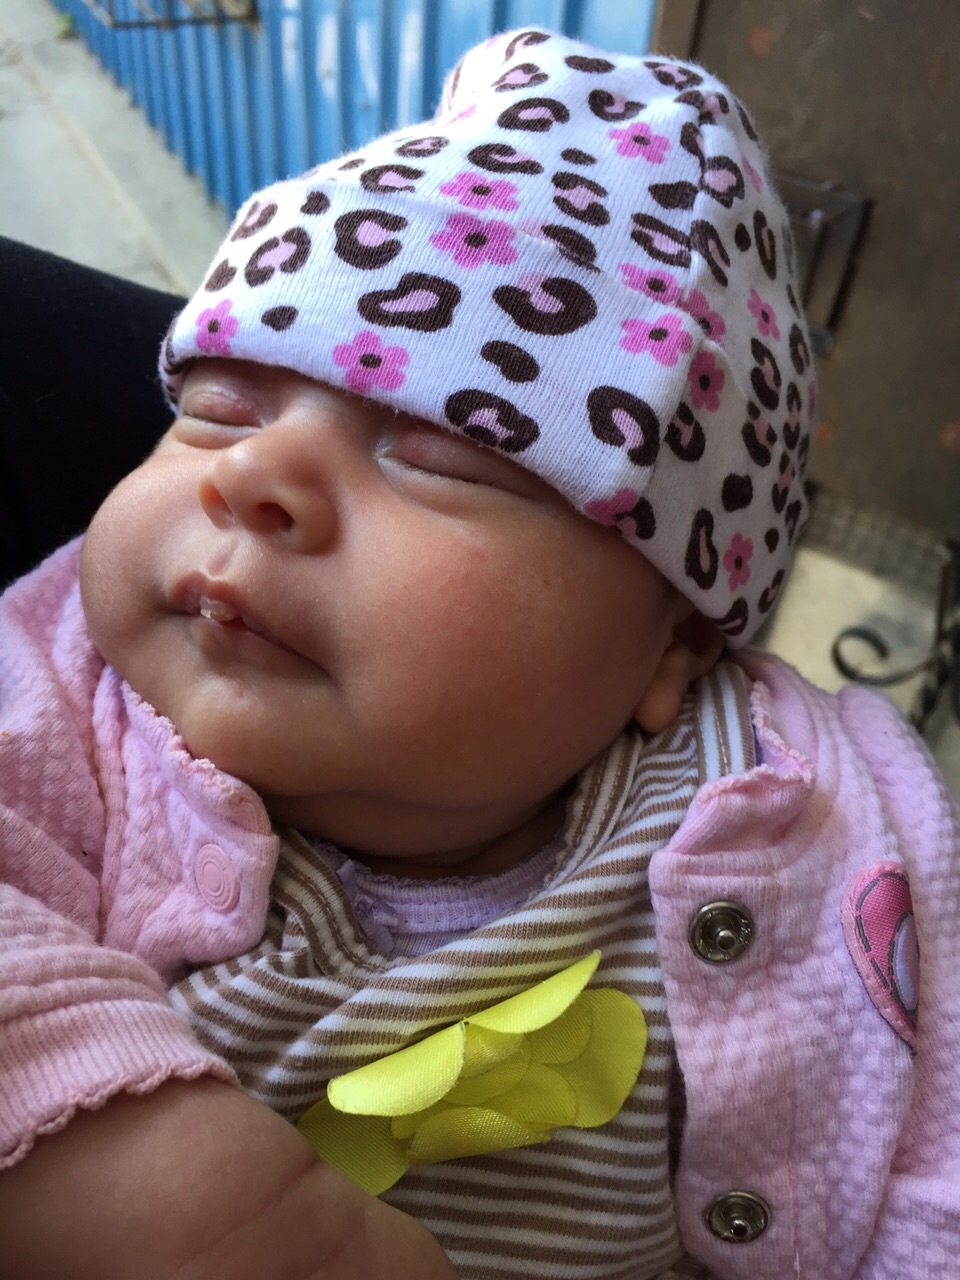 Emily, our newest grandchild